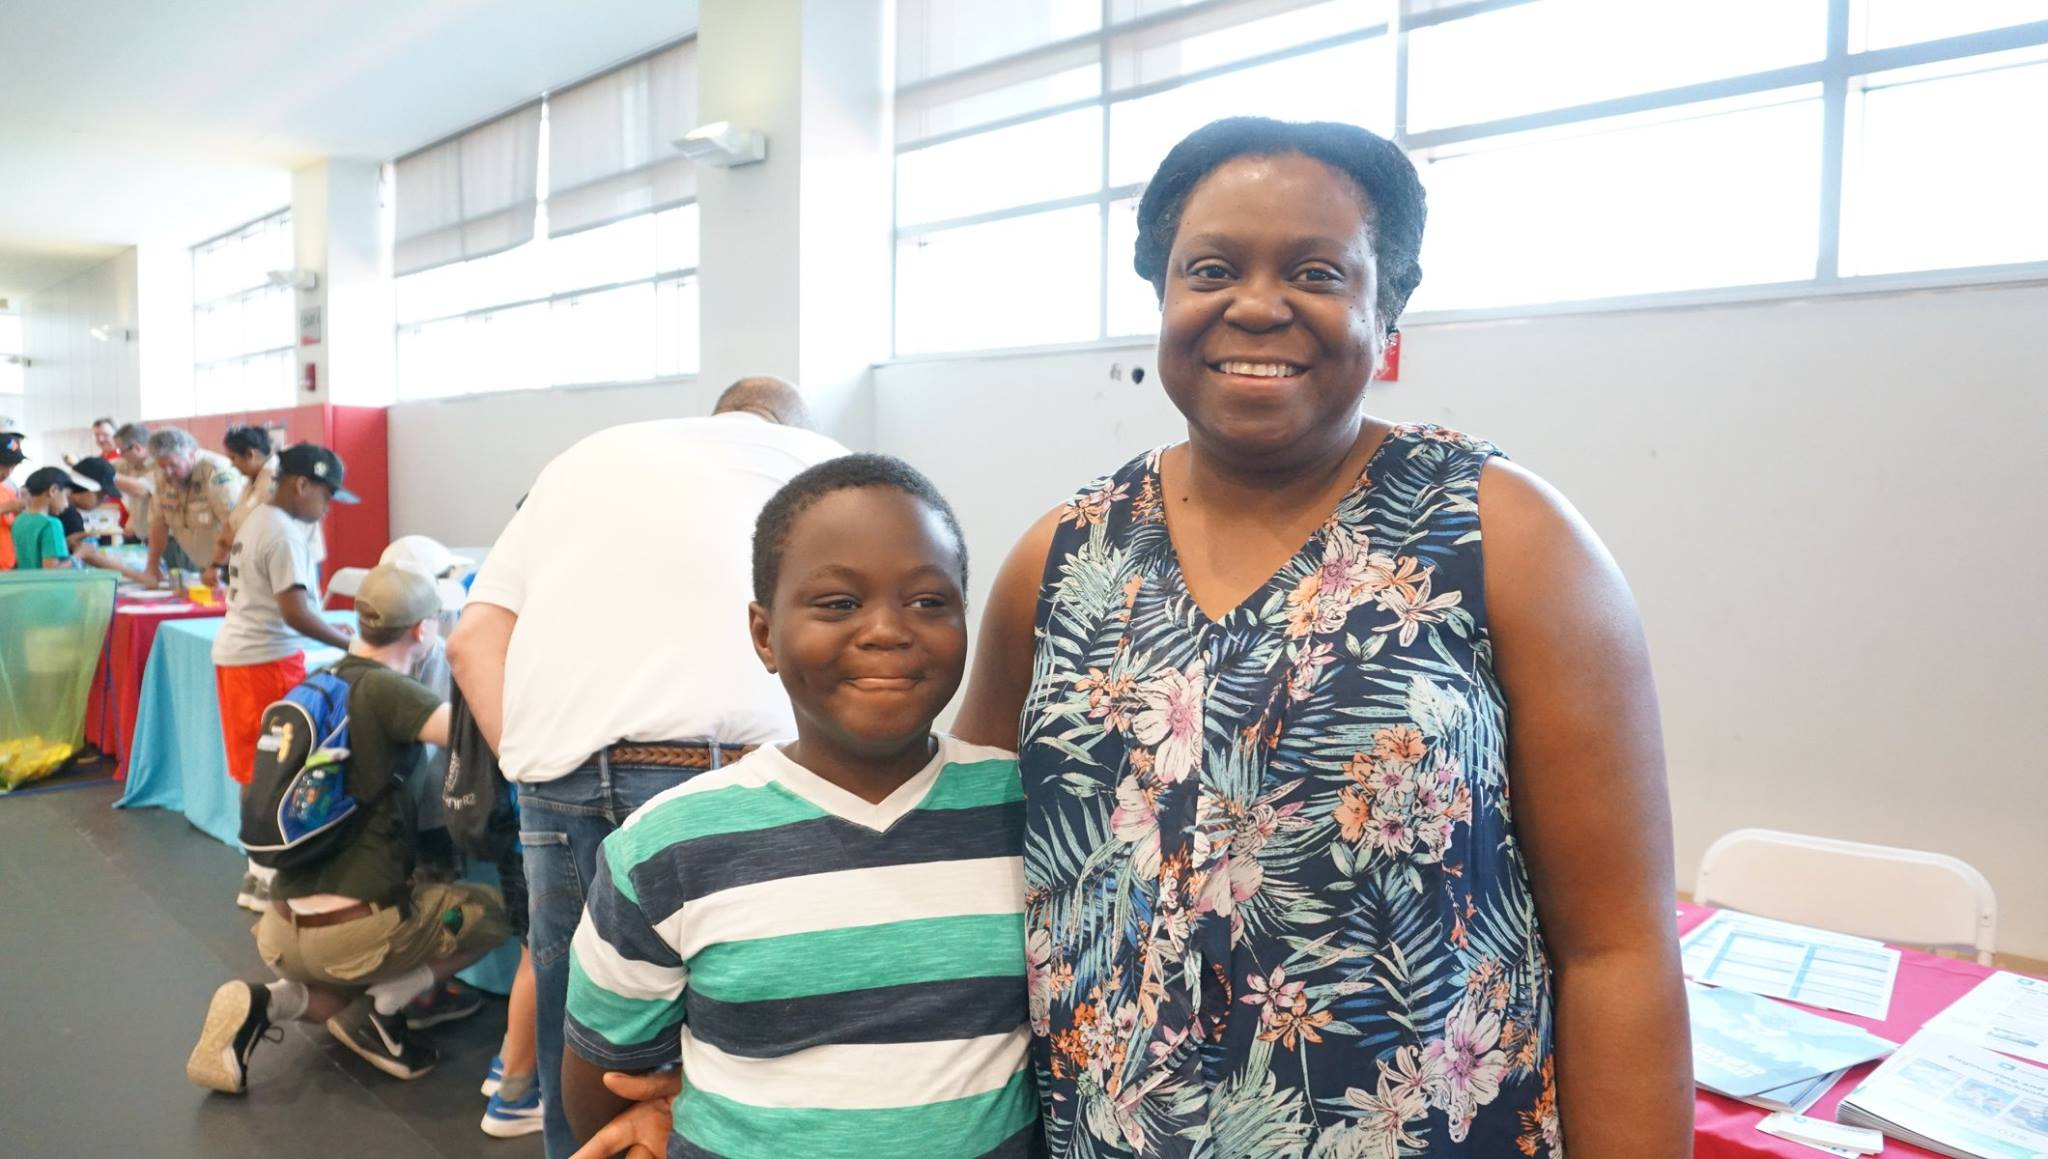 A son and mother smile together in the Sports & Rec Center.